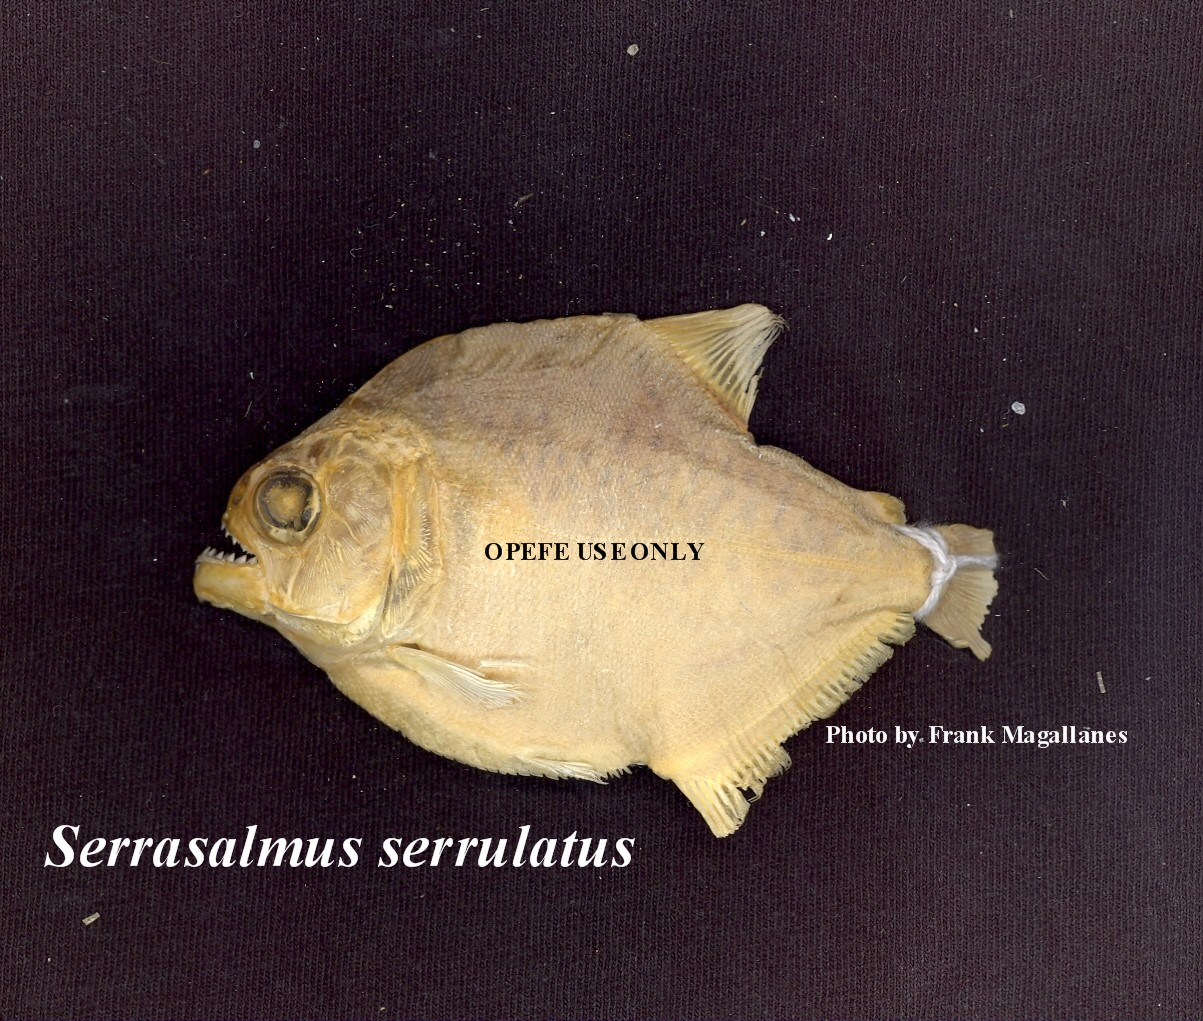 Dry specimen. Serrasalmus serrulatus. Photo by Frank Magallanes